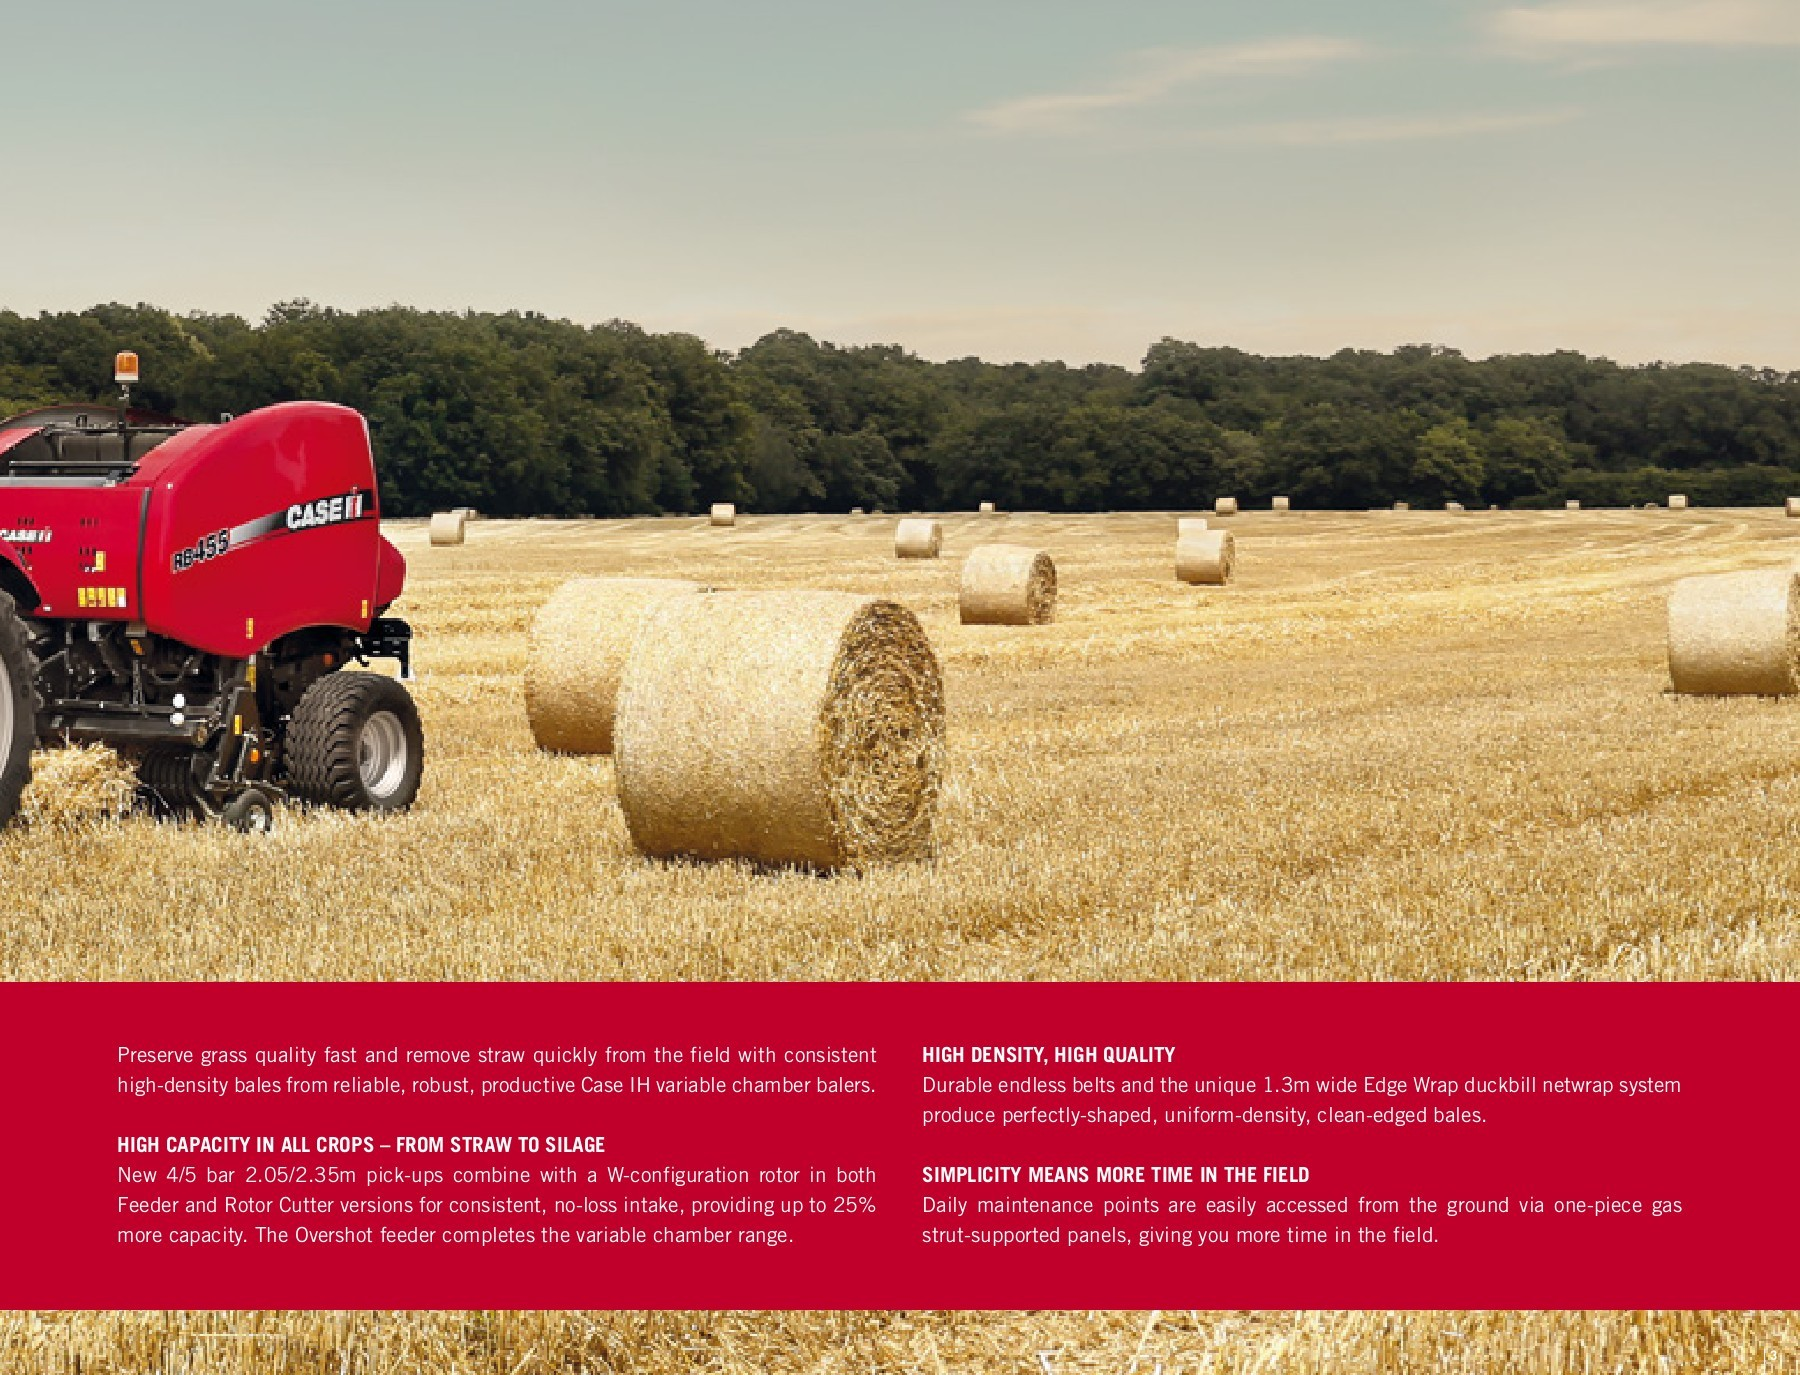 RB 455/465 Series Variable Chamber | Round Balers | Case IH